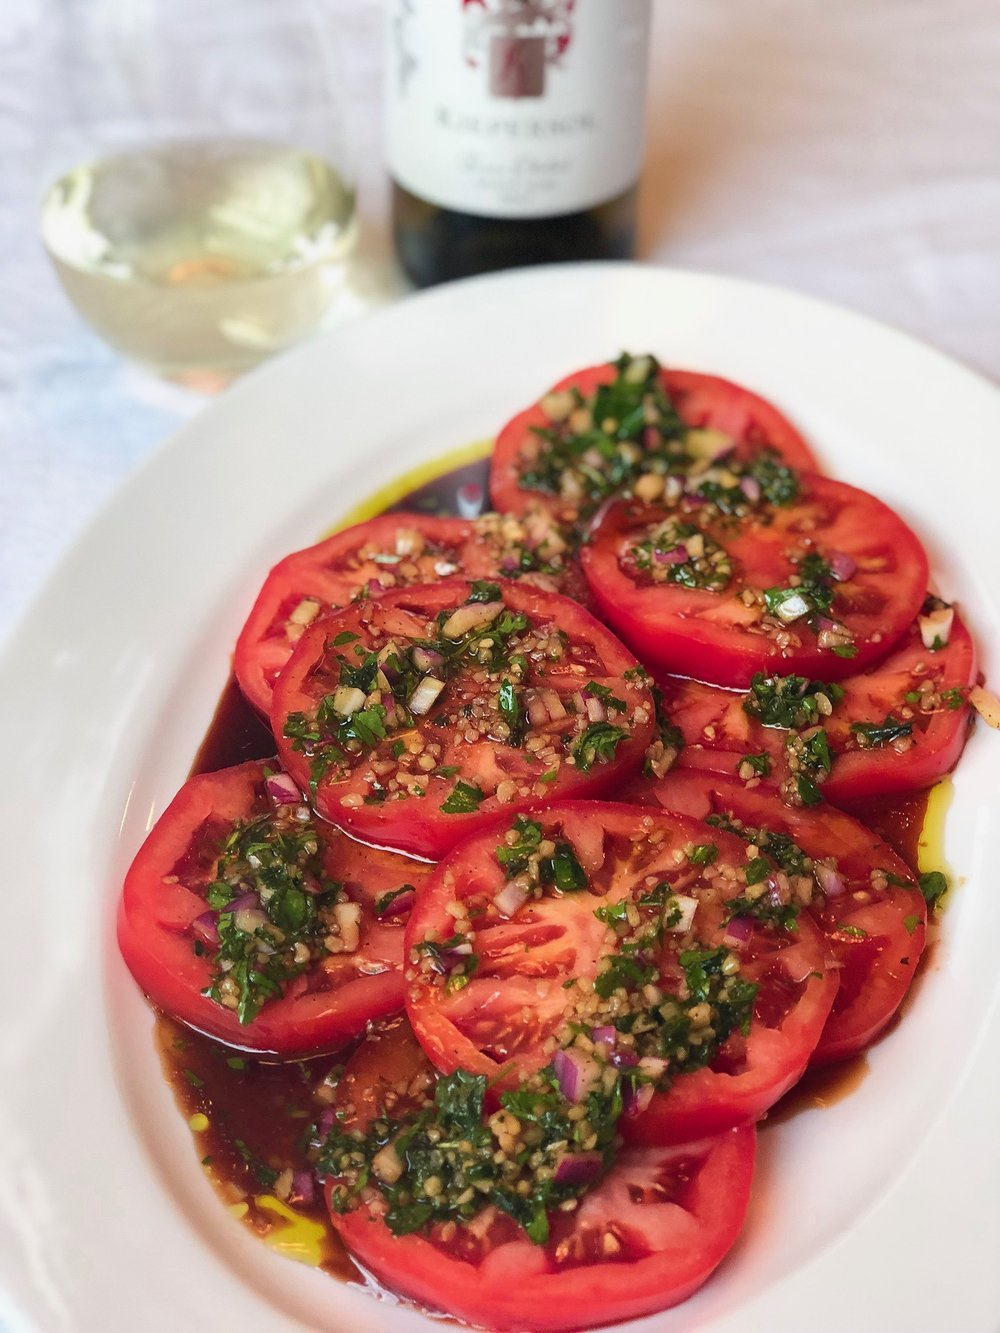 Marinated Jacksonville Tomatoes